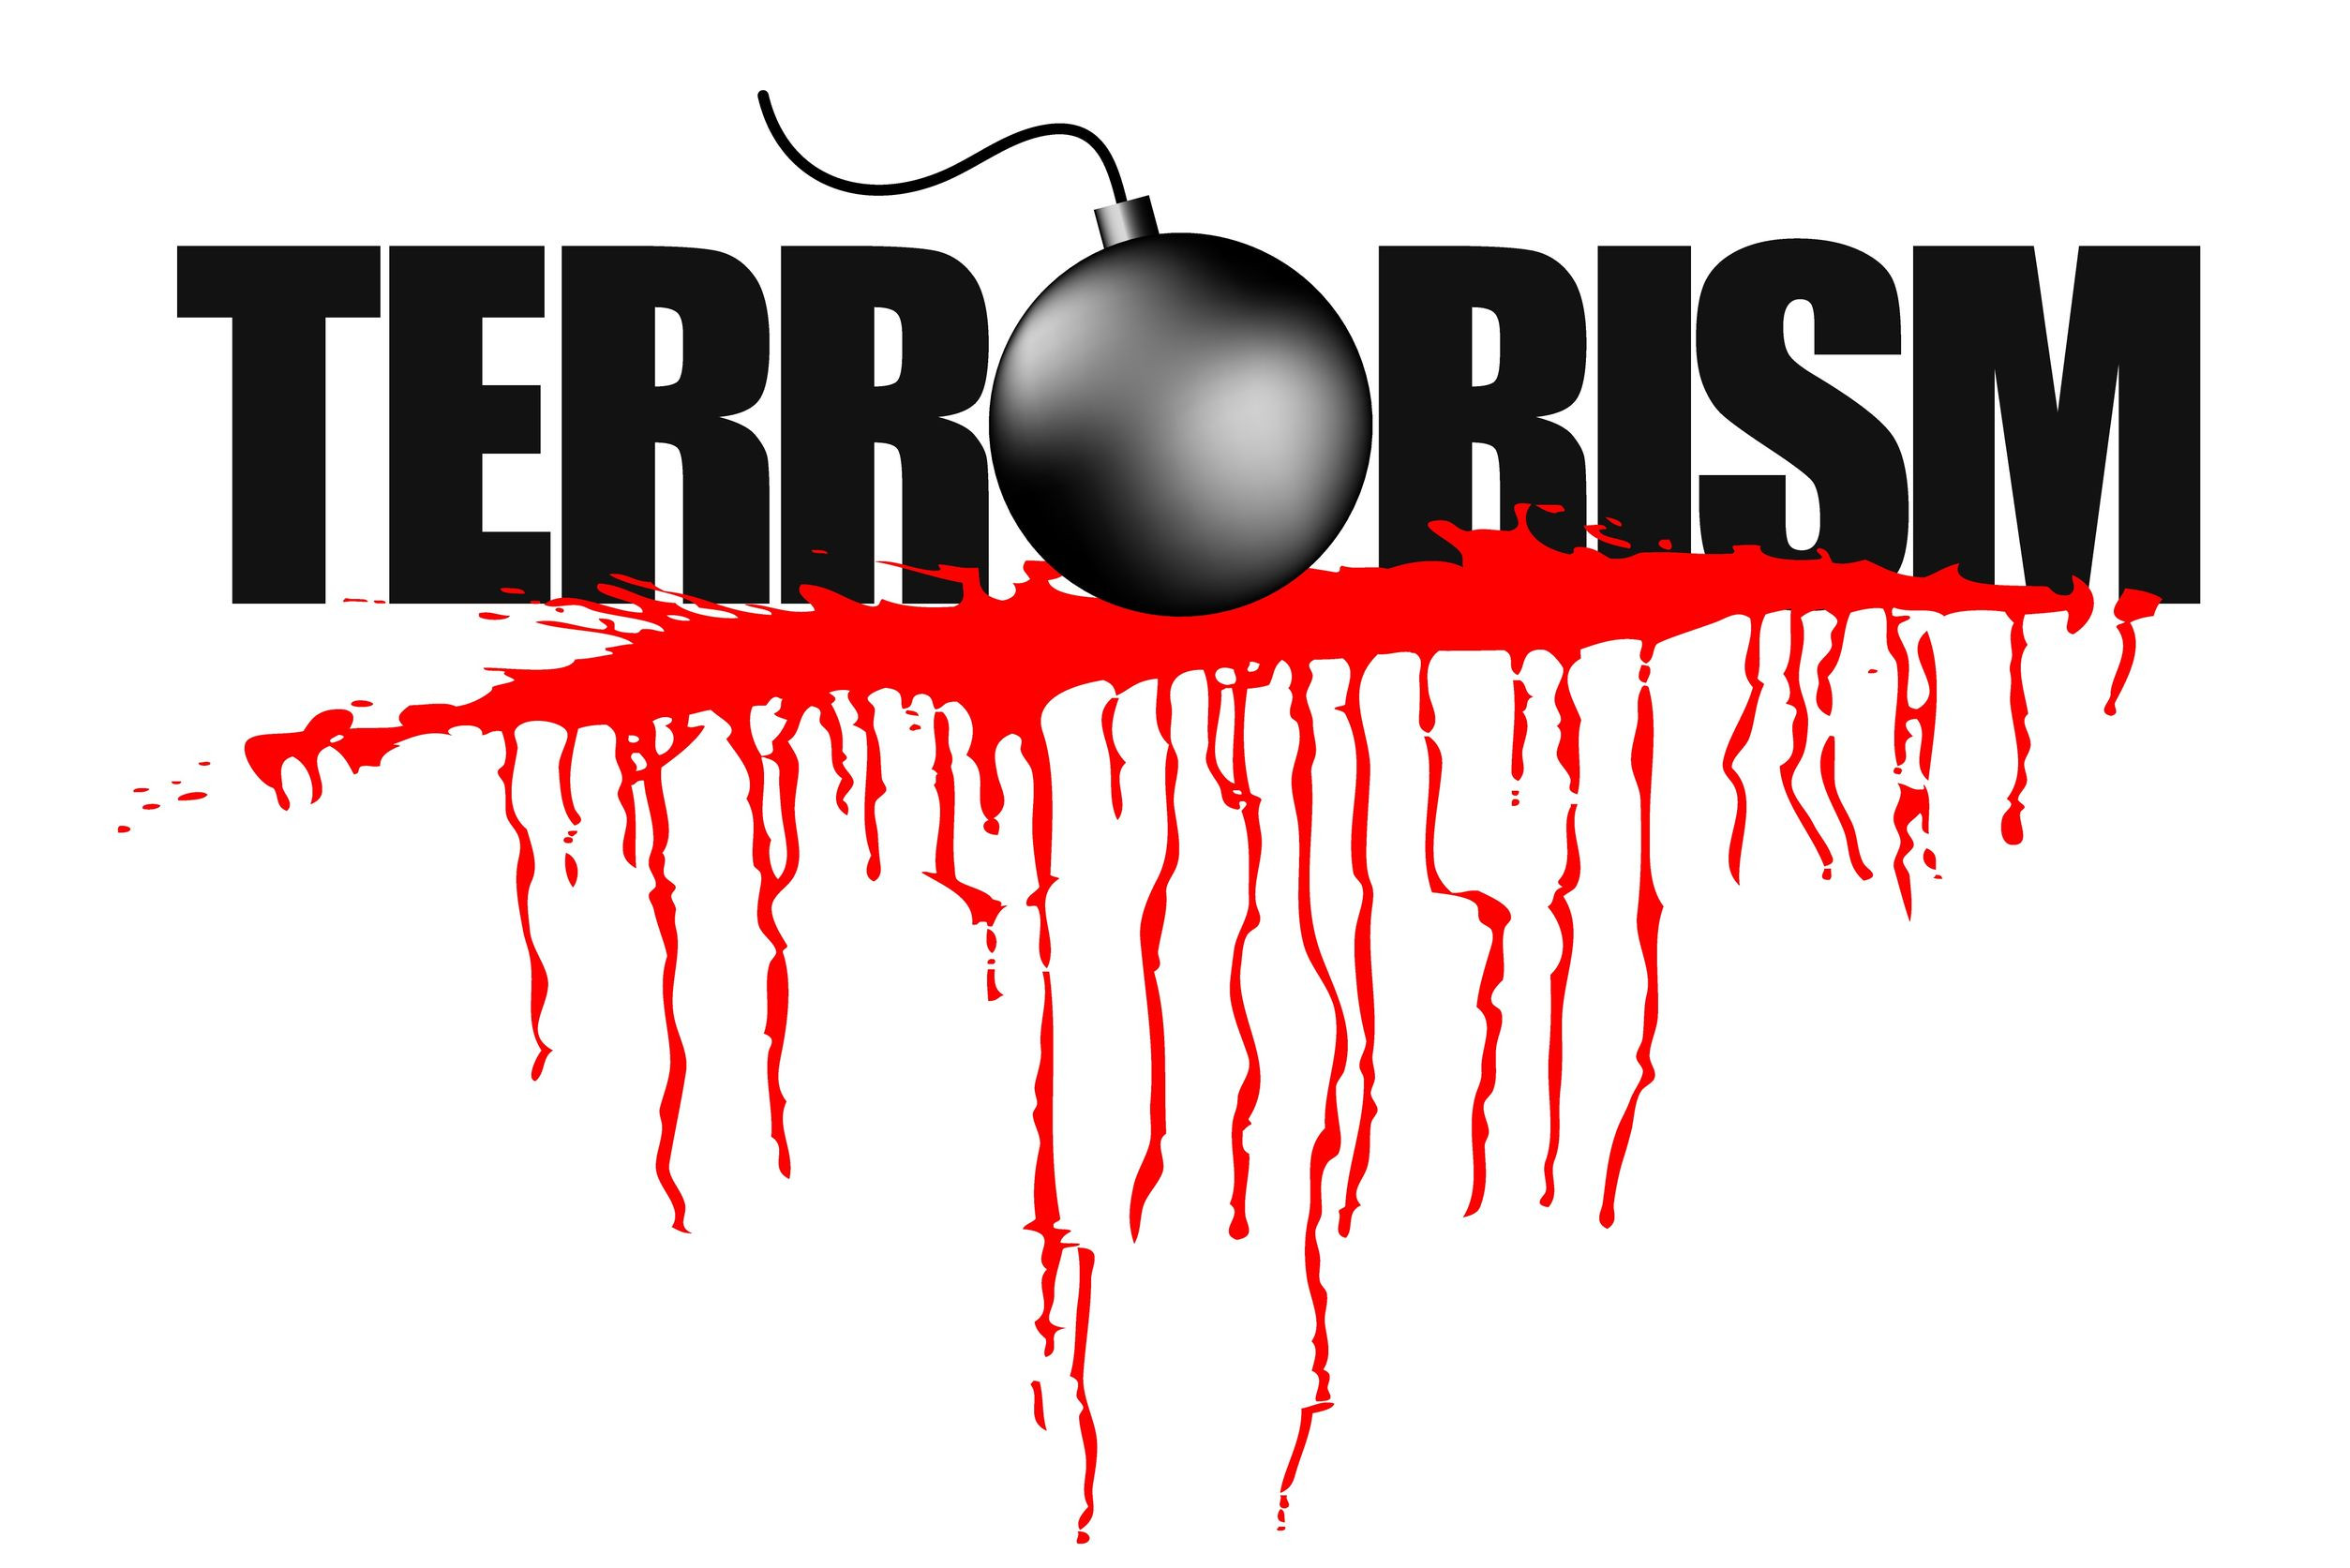 Israel: Another Day of Terror